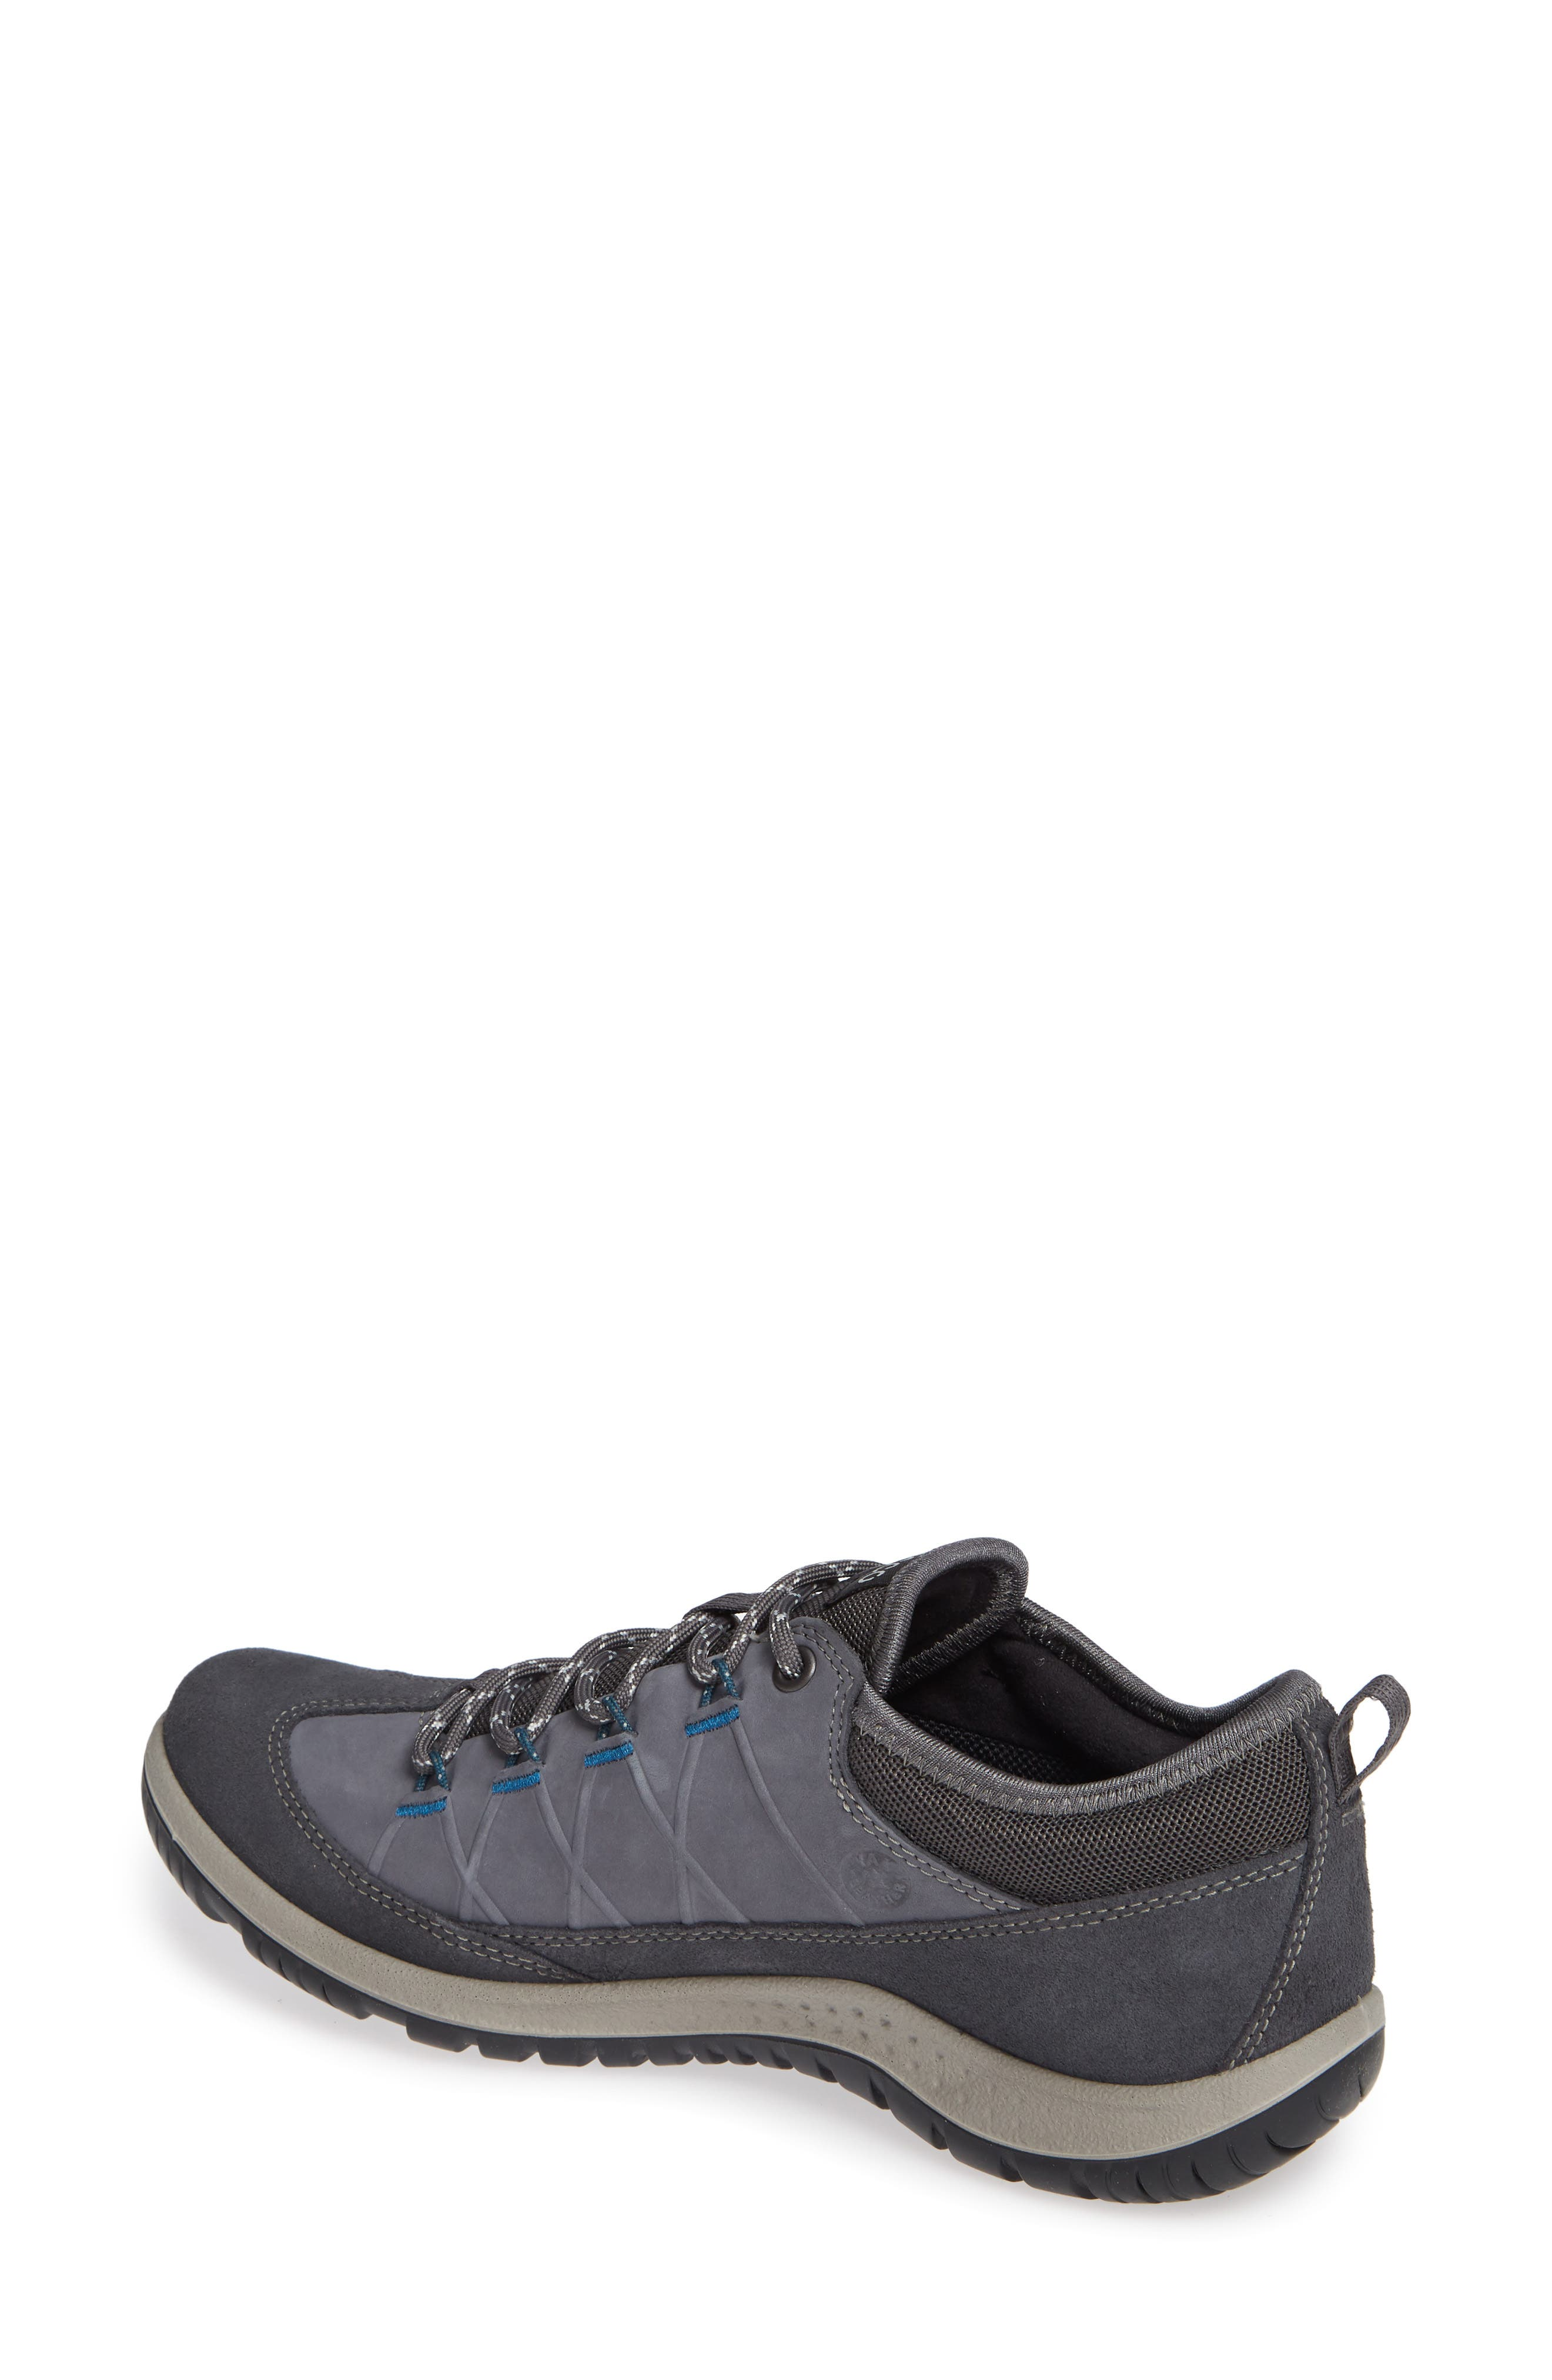 'Aspina GTX' Waterproof Sneaker,                             Alternate thumbnail 2, color,                             057